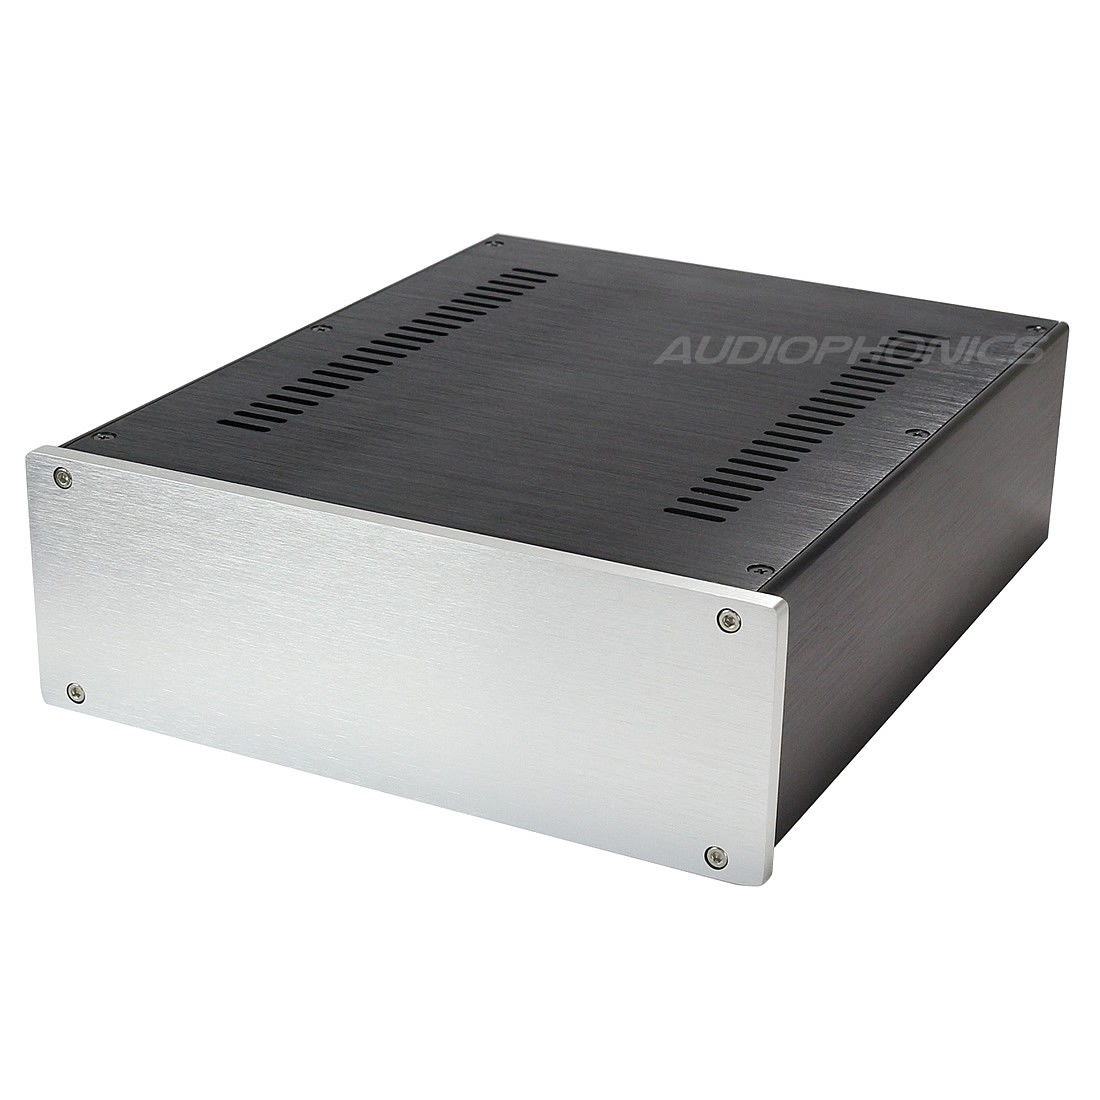 DIY Box / Case 100% Aluminium 260x249x90mm Silver Pannel